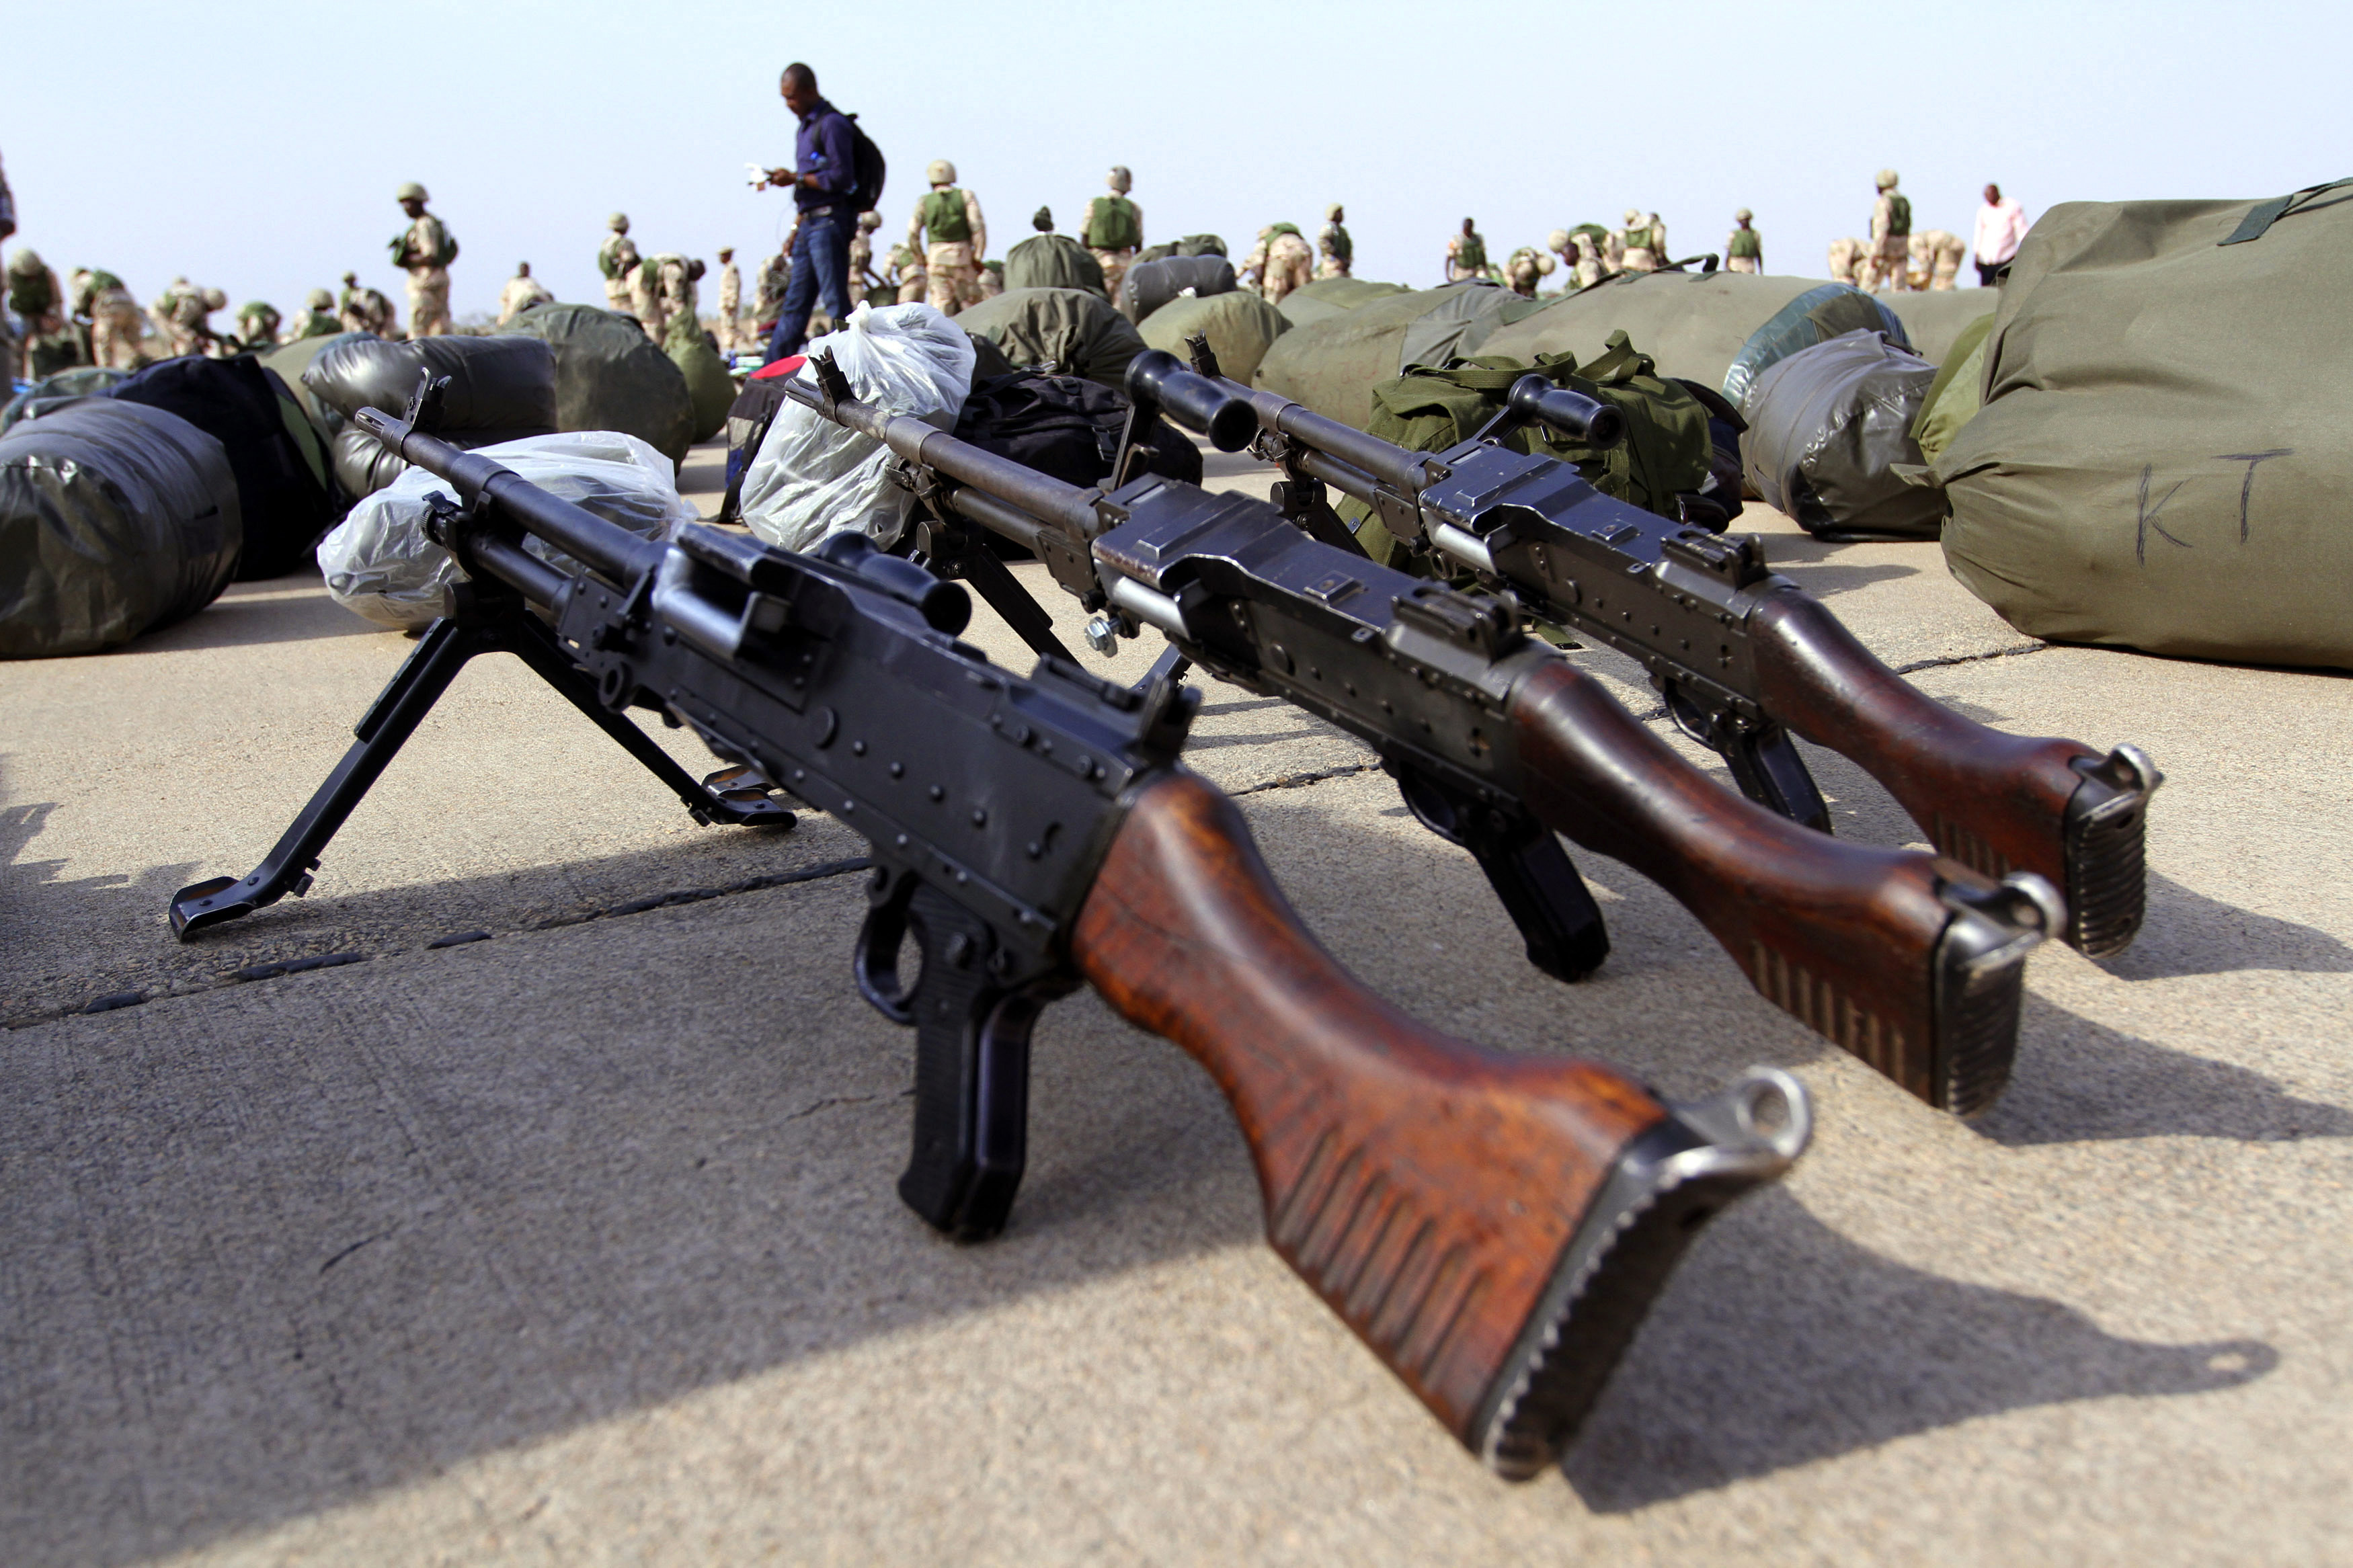 Guns are arranged on the ground as Nigerian soldiers prepare to board a military plane before leaving for Mali, at the airport in Nigeria's northern state of Kaduna on January 17, 2013. REUTERS/Afolabi Sotunde